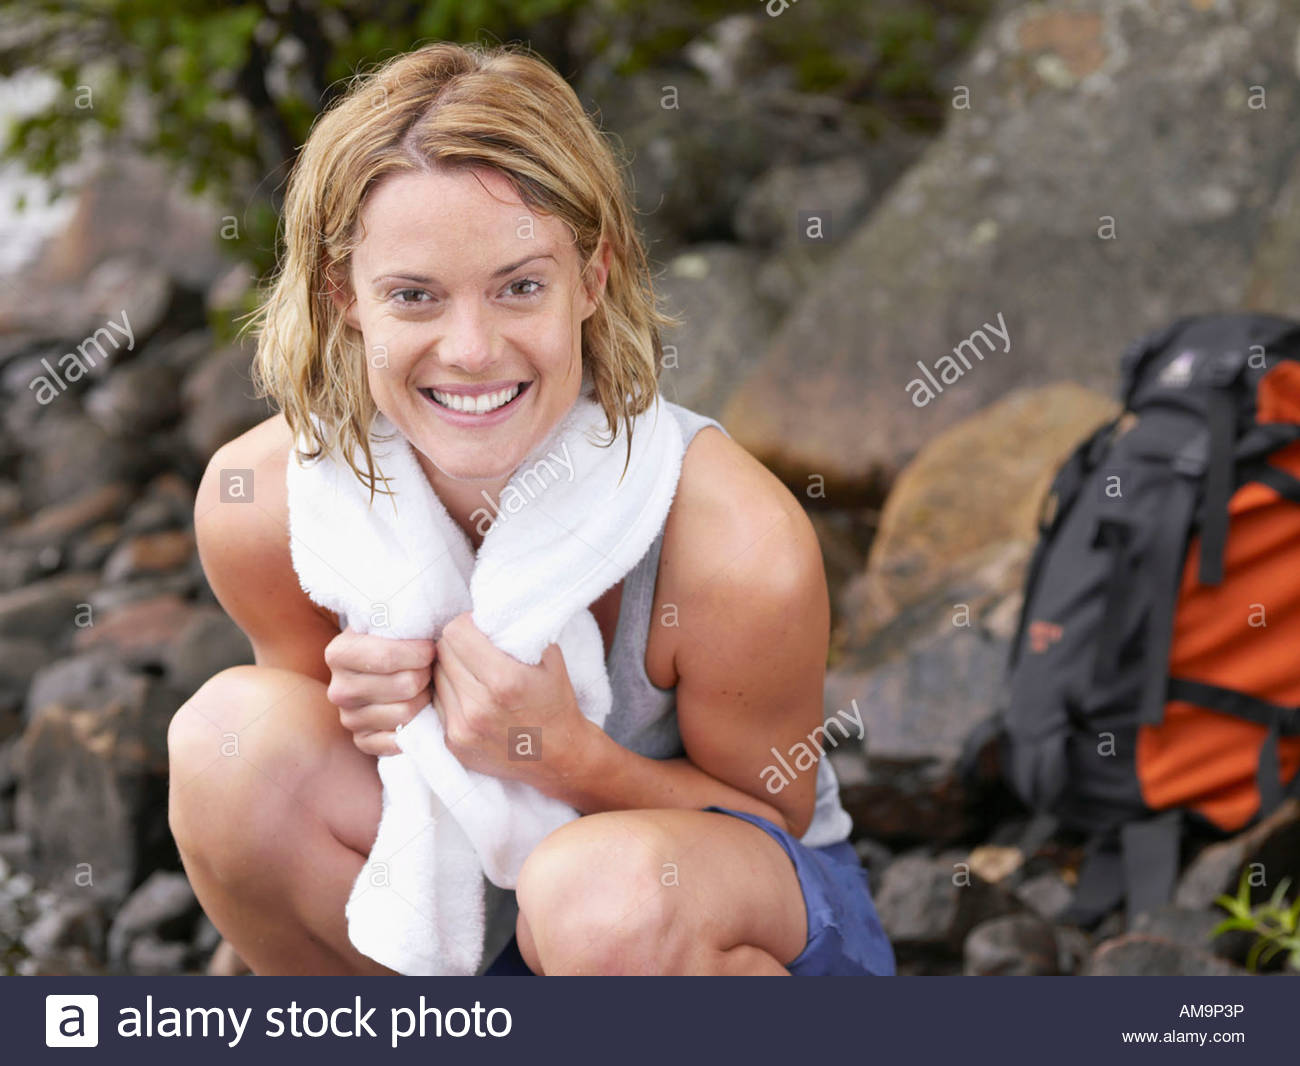 Woman crouching on rocks smiling with backpack in background. - Stock Image